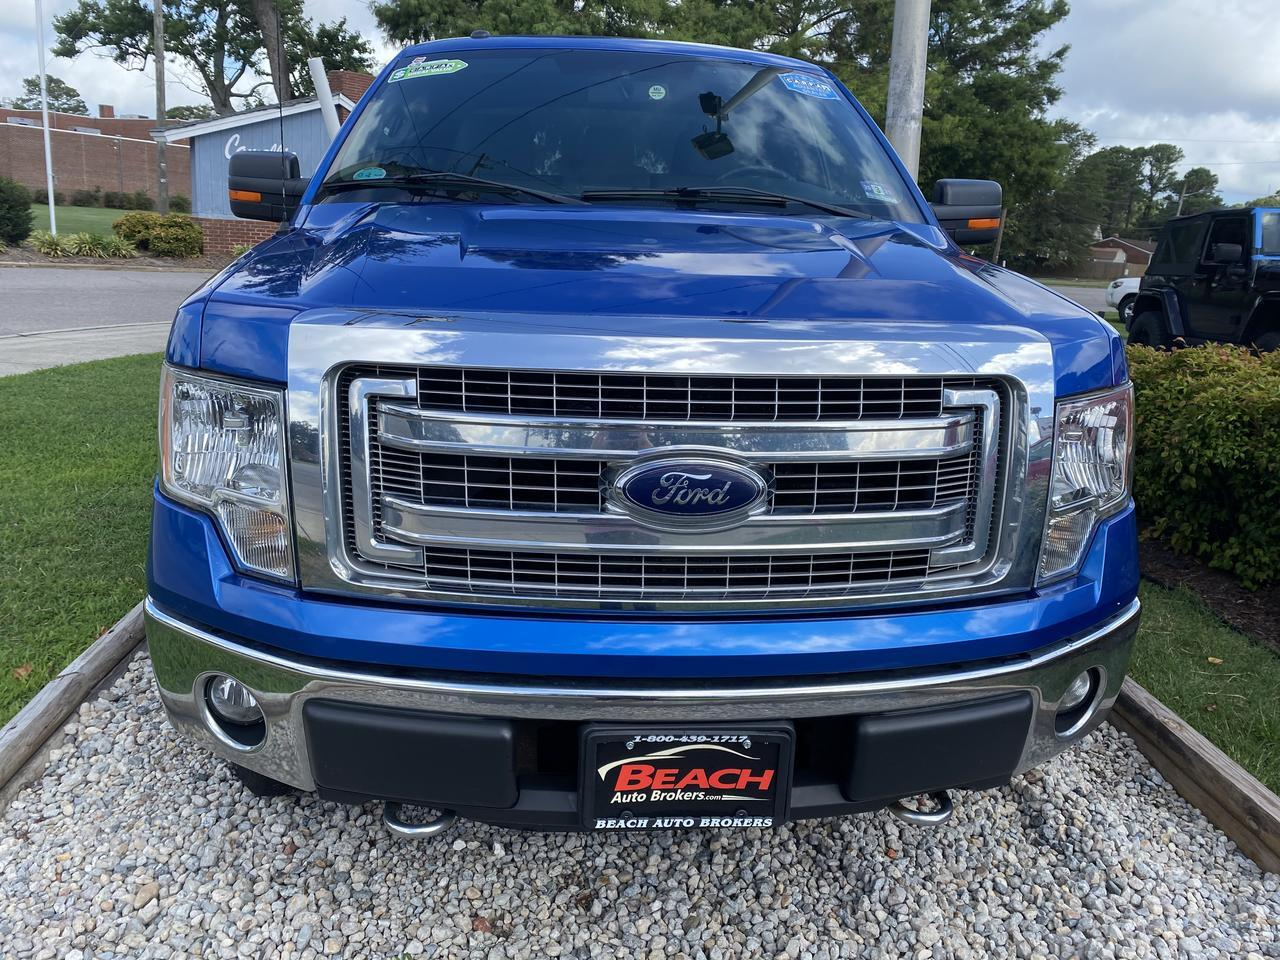 2014 FORD F-150 XLT SUPERCAB 4X4, WARRANTY, AUX/USB PORT, RUNNING BOARDS, CRUISE CONTROL, 1 OWNER, CLEAN CARFAX! Norfolk VA